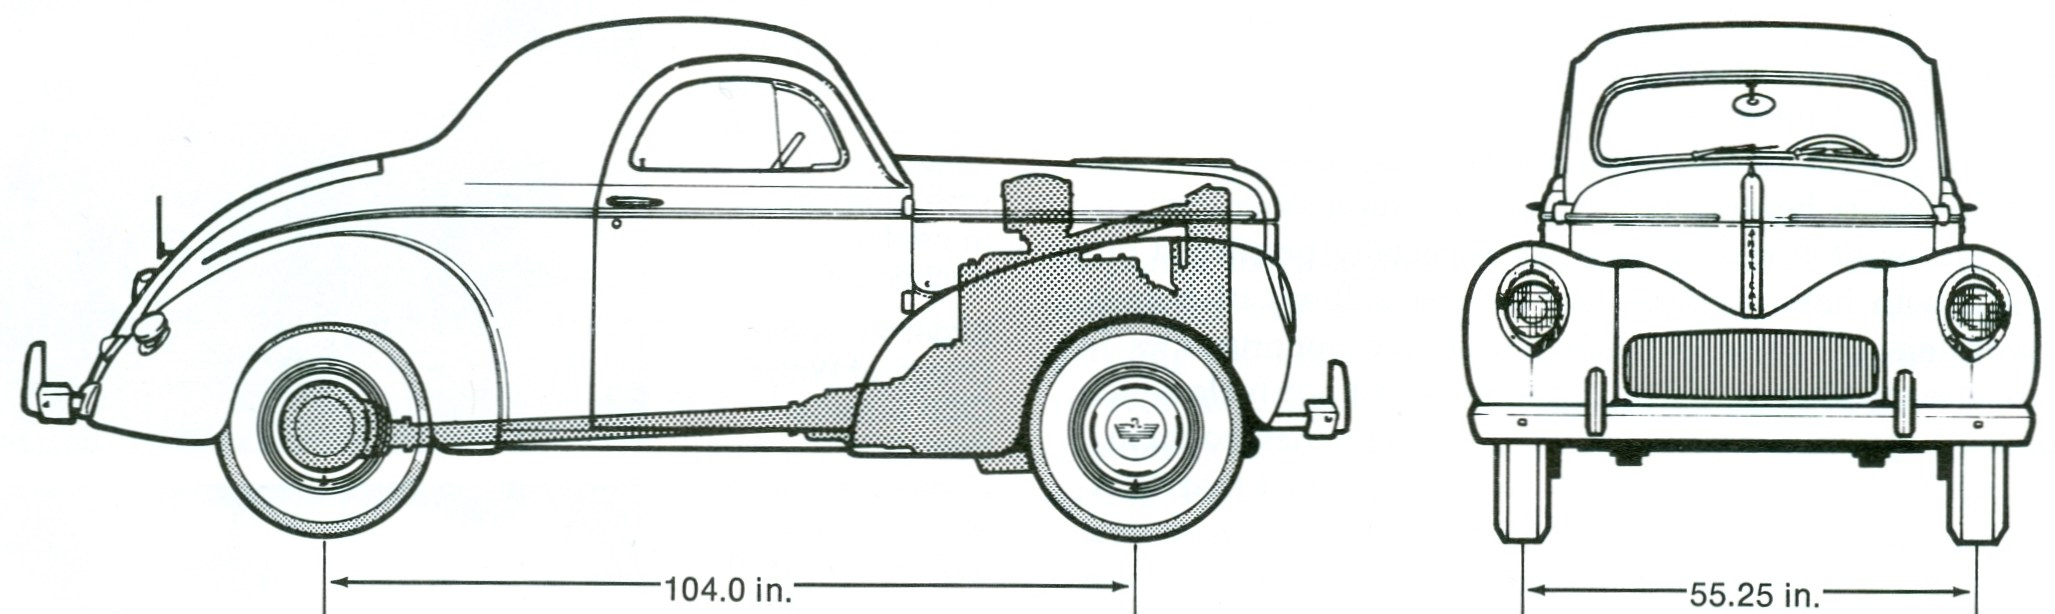 Willys Americar blueprint